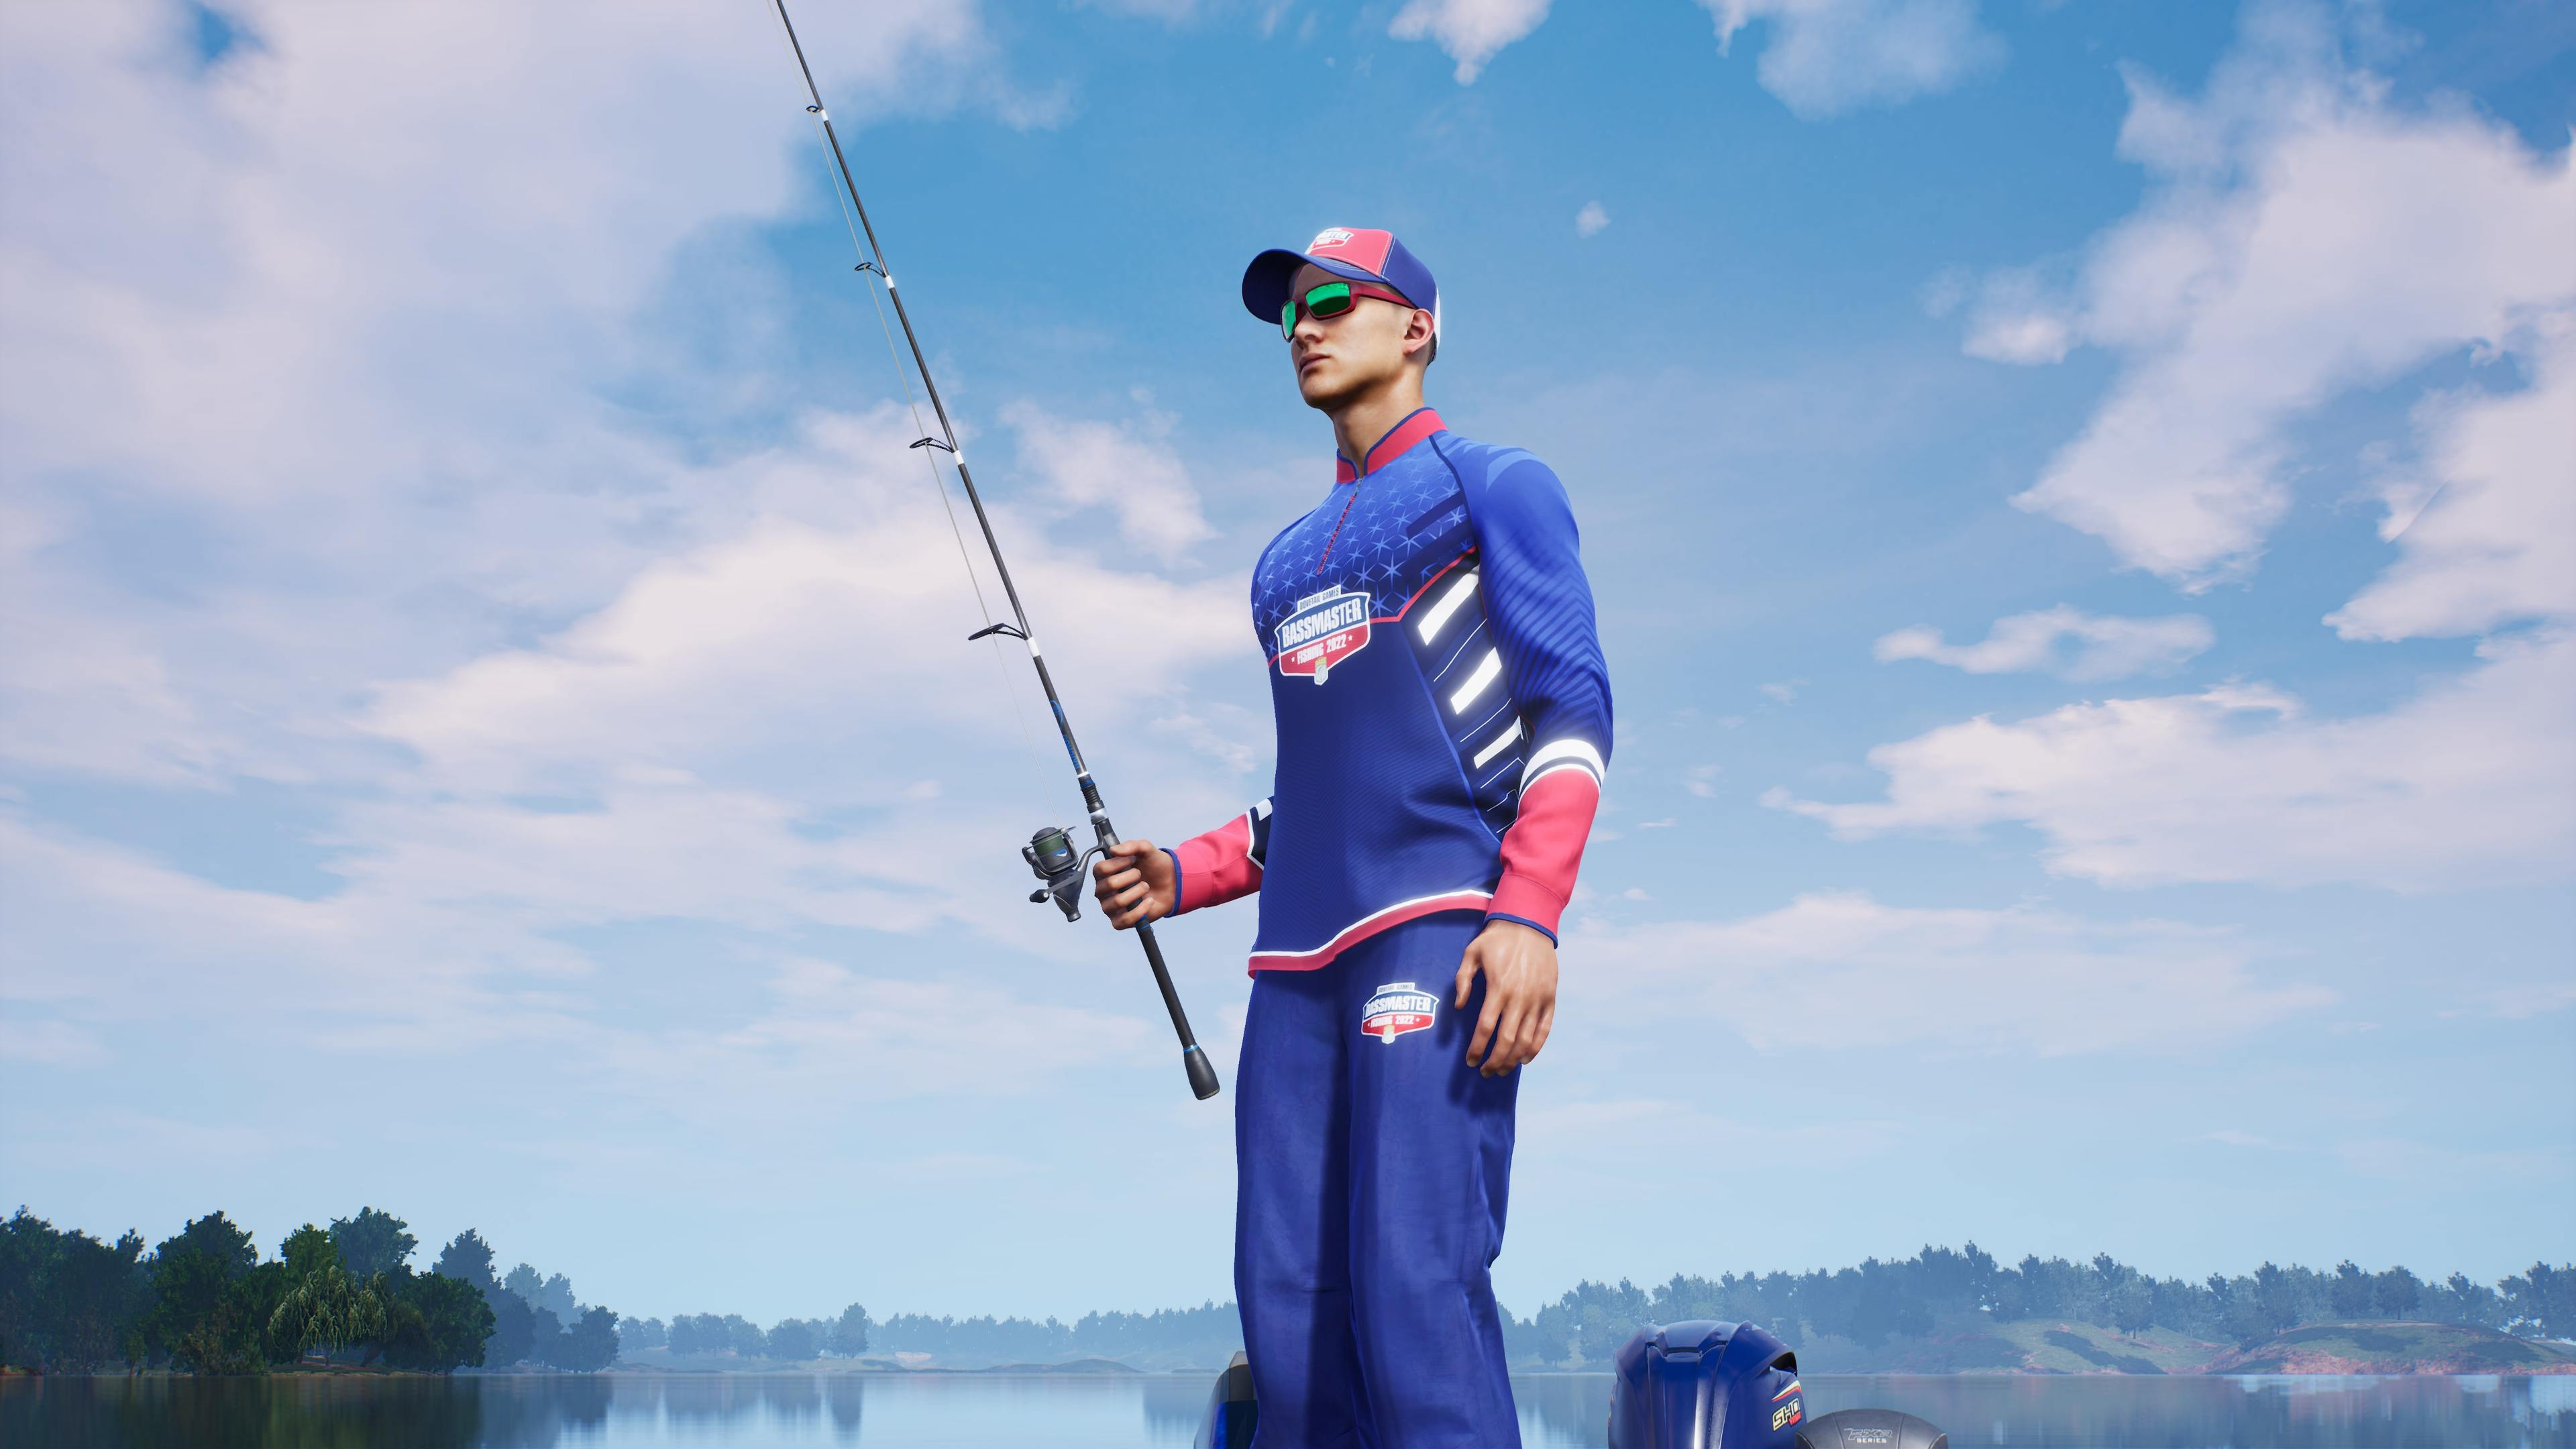 Скриншот №2 к Bassmaster Fishing 2022 Deluxe Edition PS4 and PS5